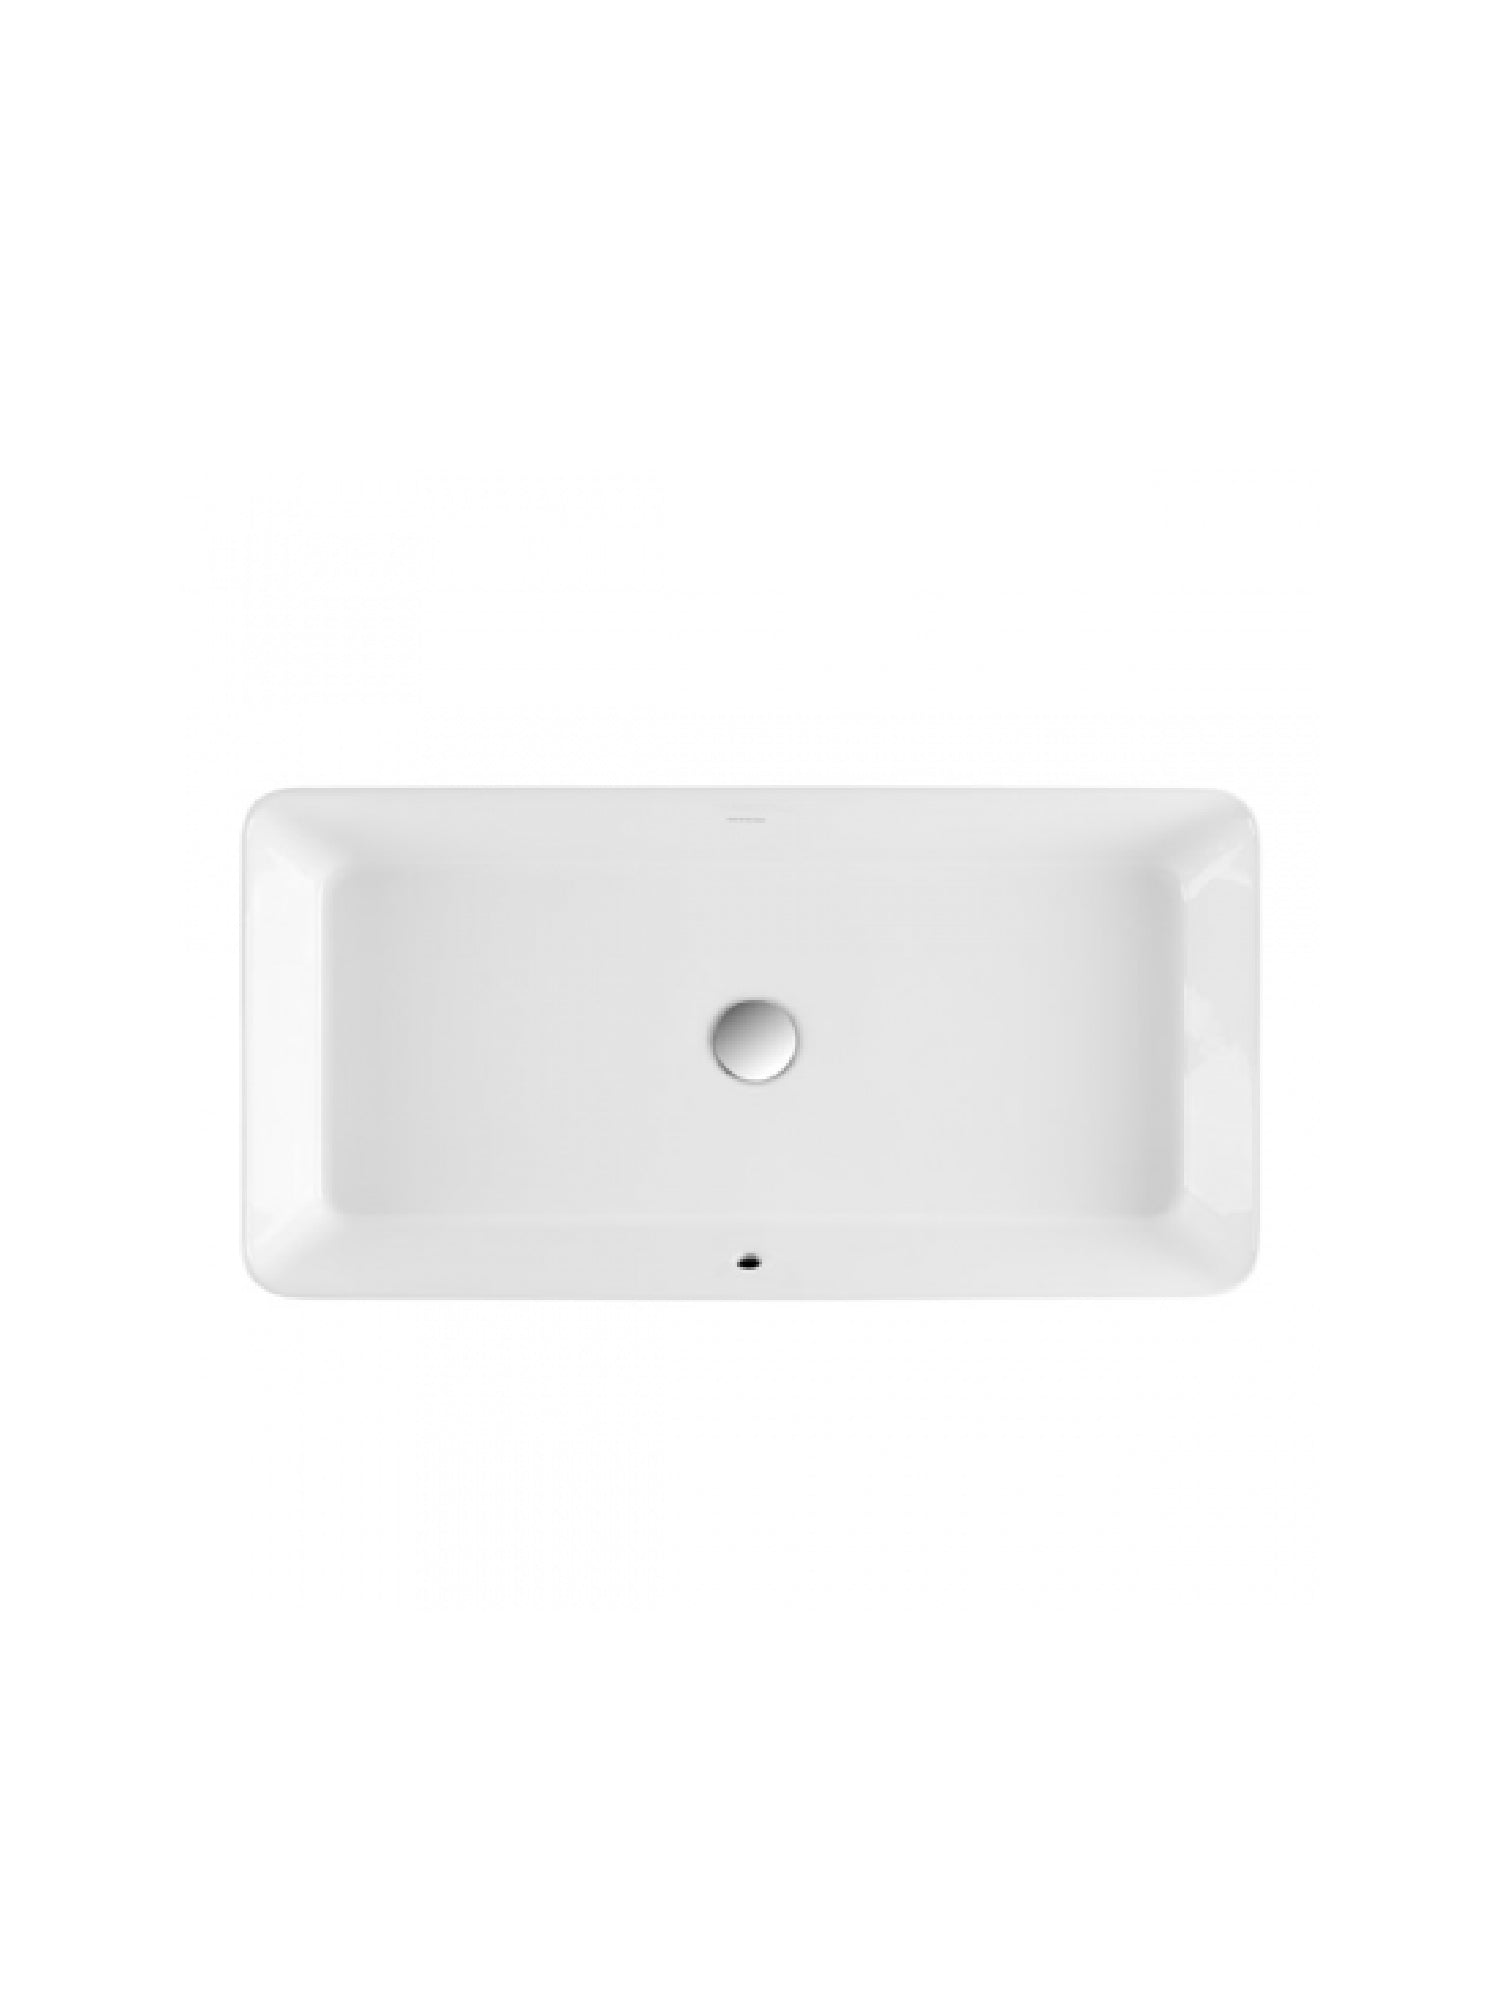 Sanlife Countertop Basin #136749